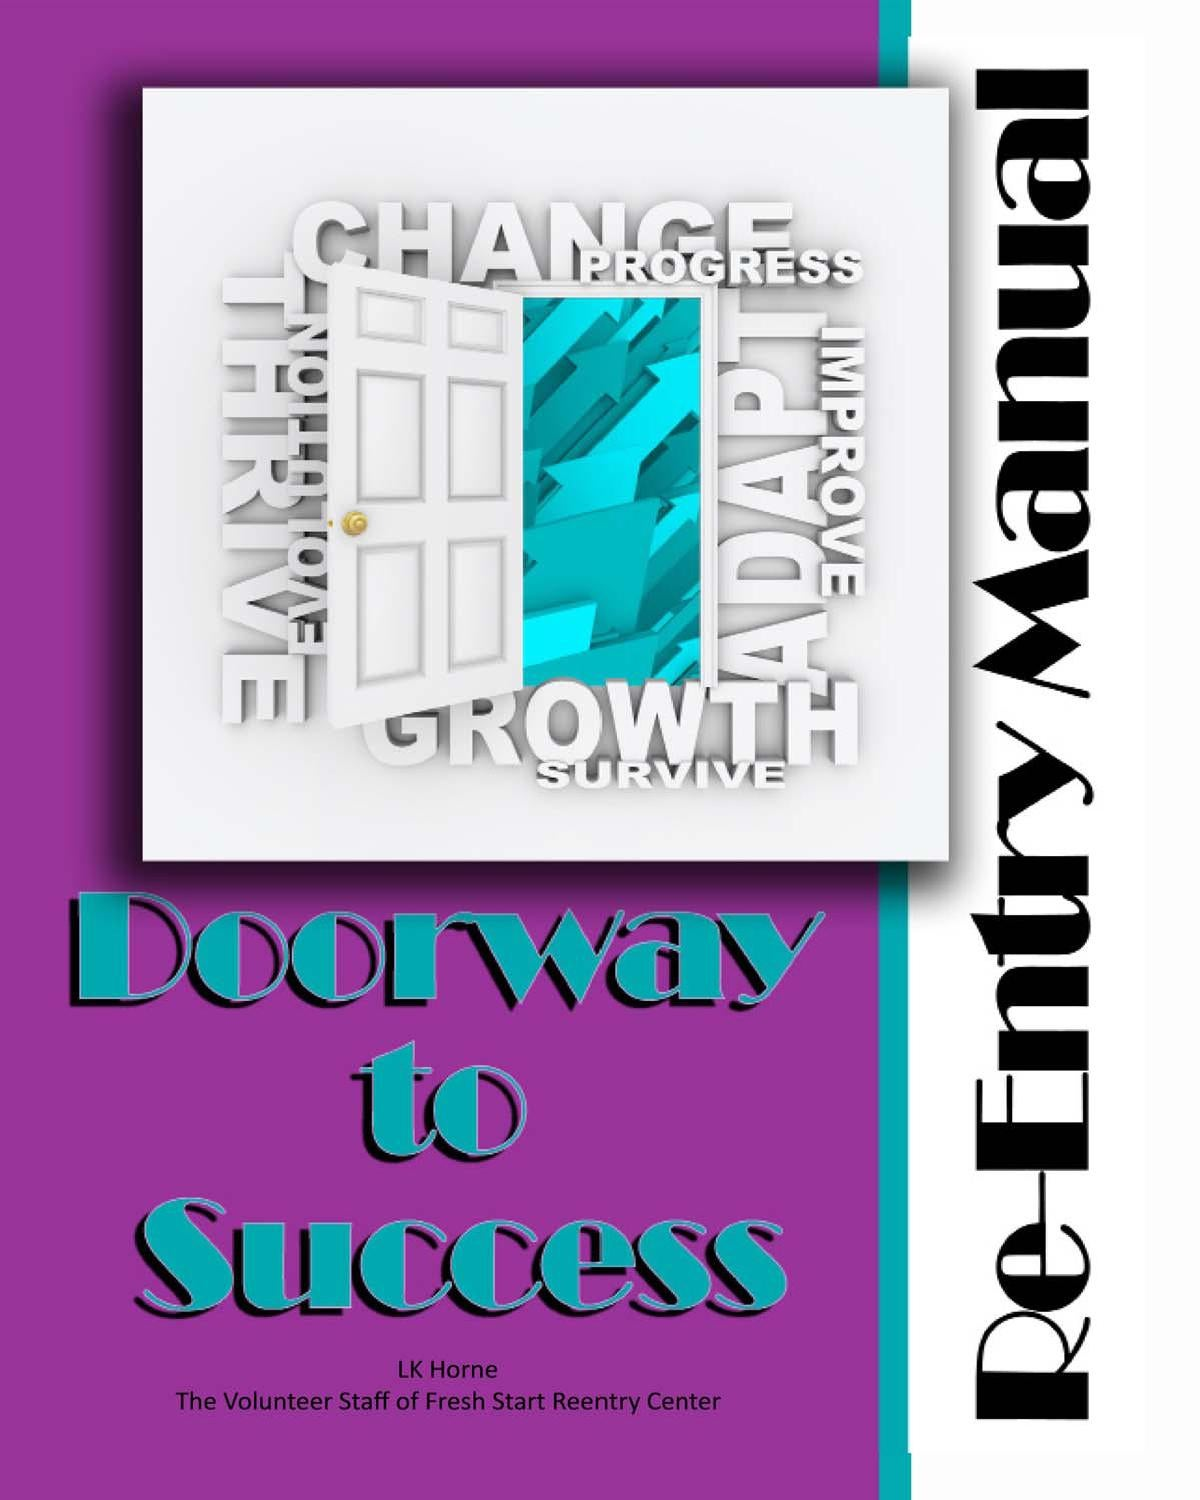 Doorway to success page extrations by connect fresh start issuu 1betcityfo Image collections